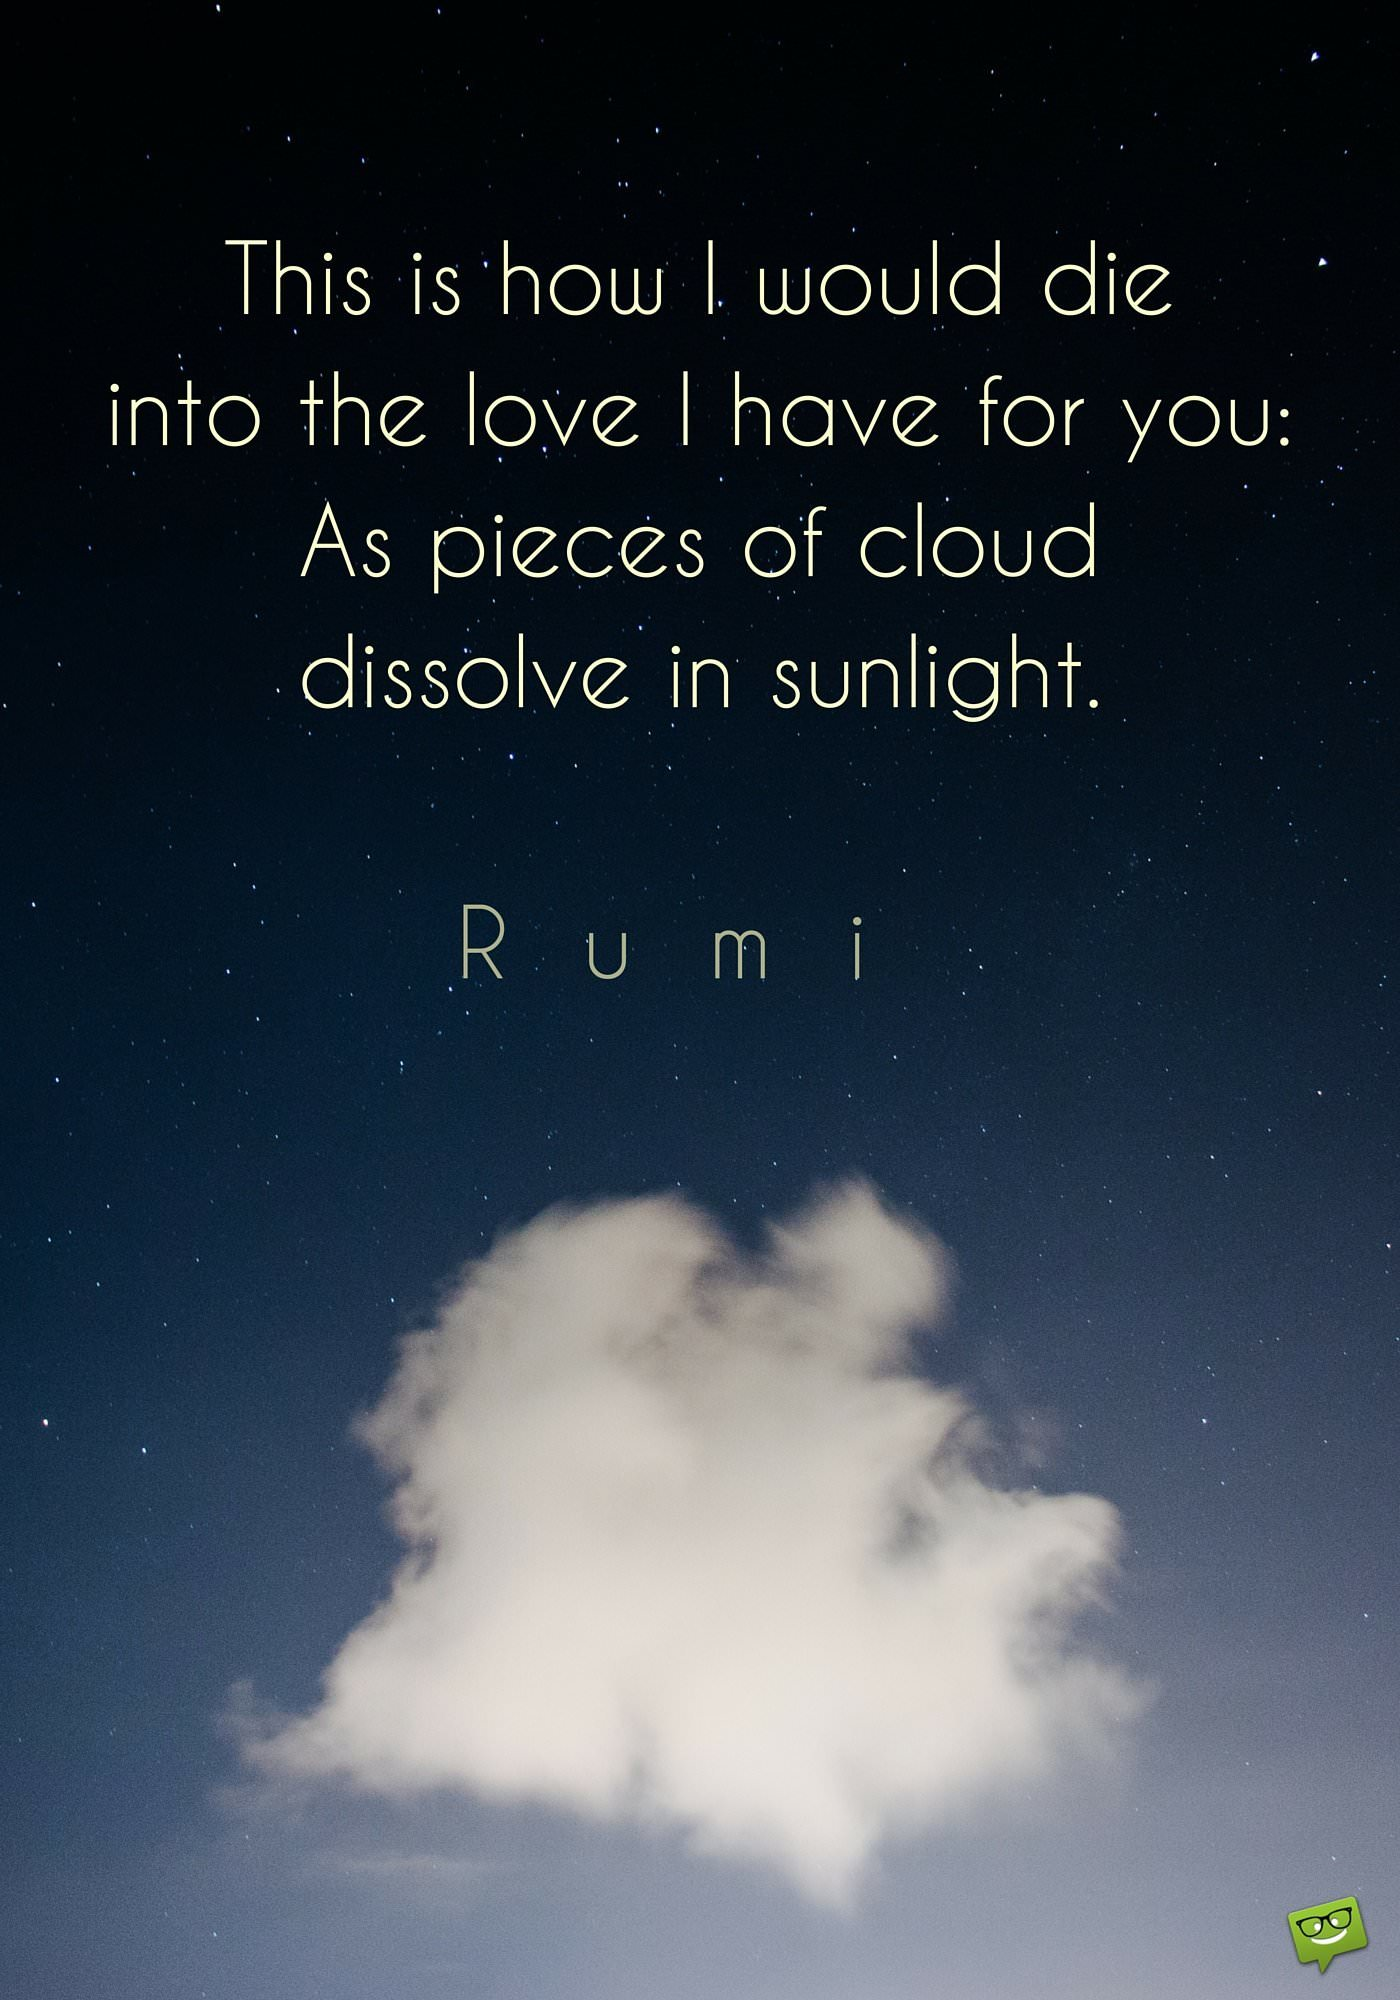 The Love I Have For You Quotes Rumi On Love Read His Best Quotes On What Makes Us One